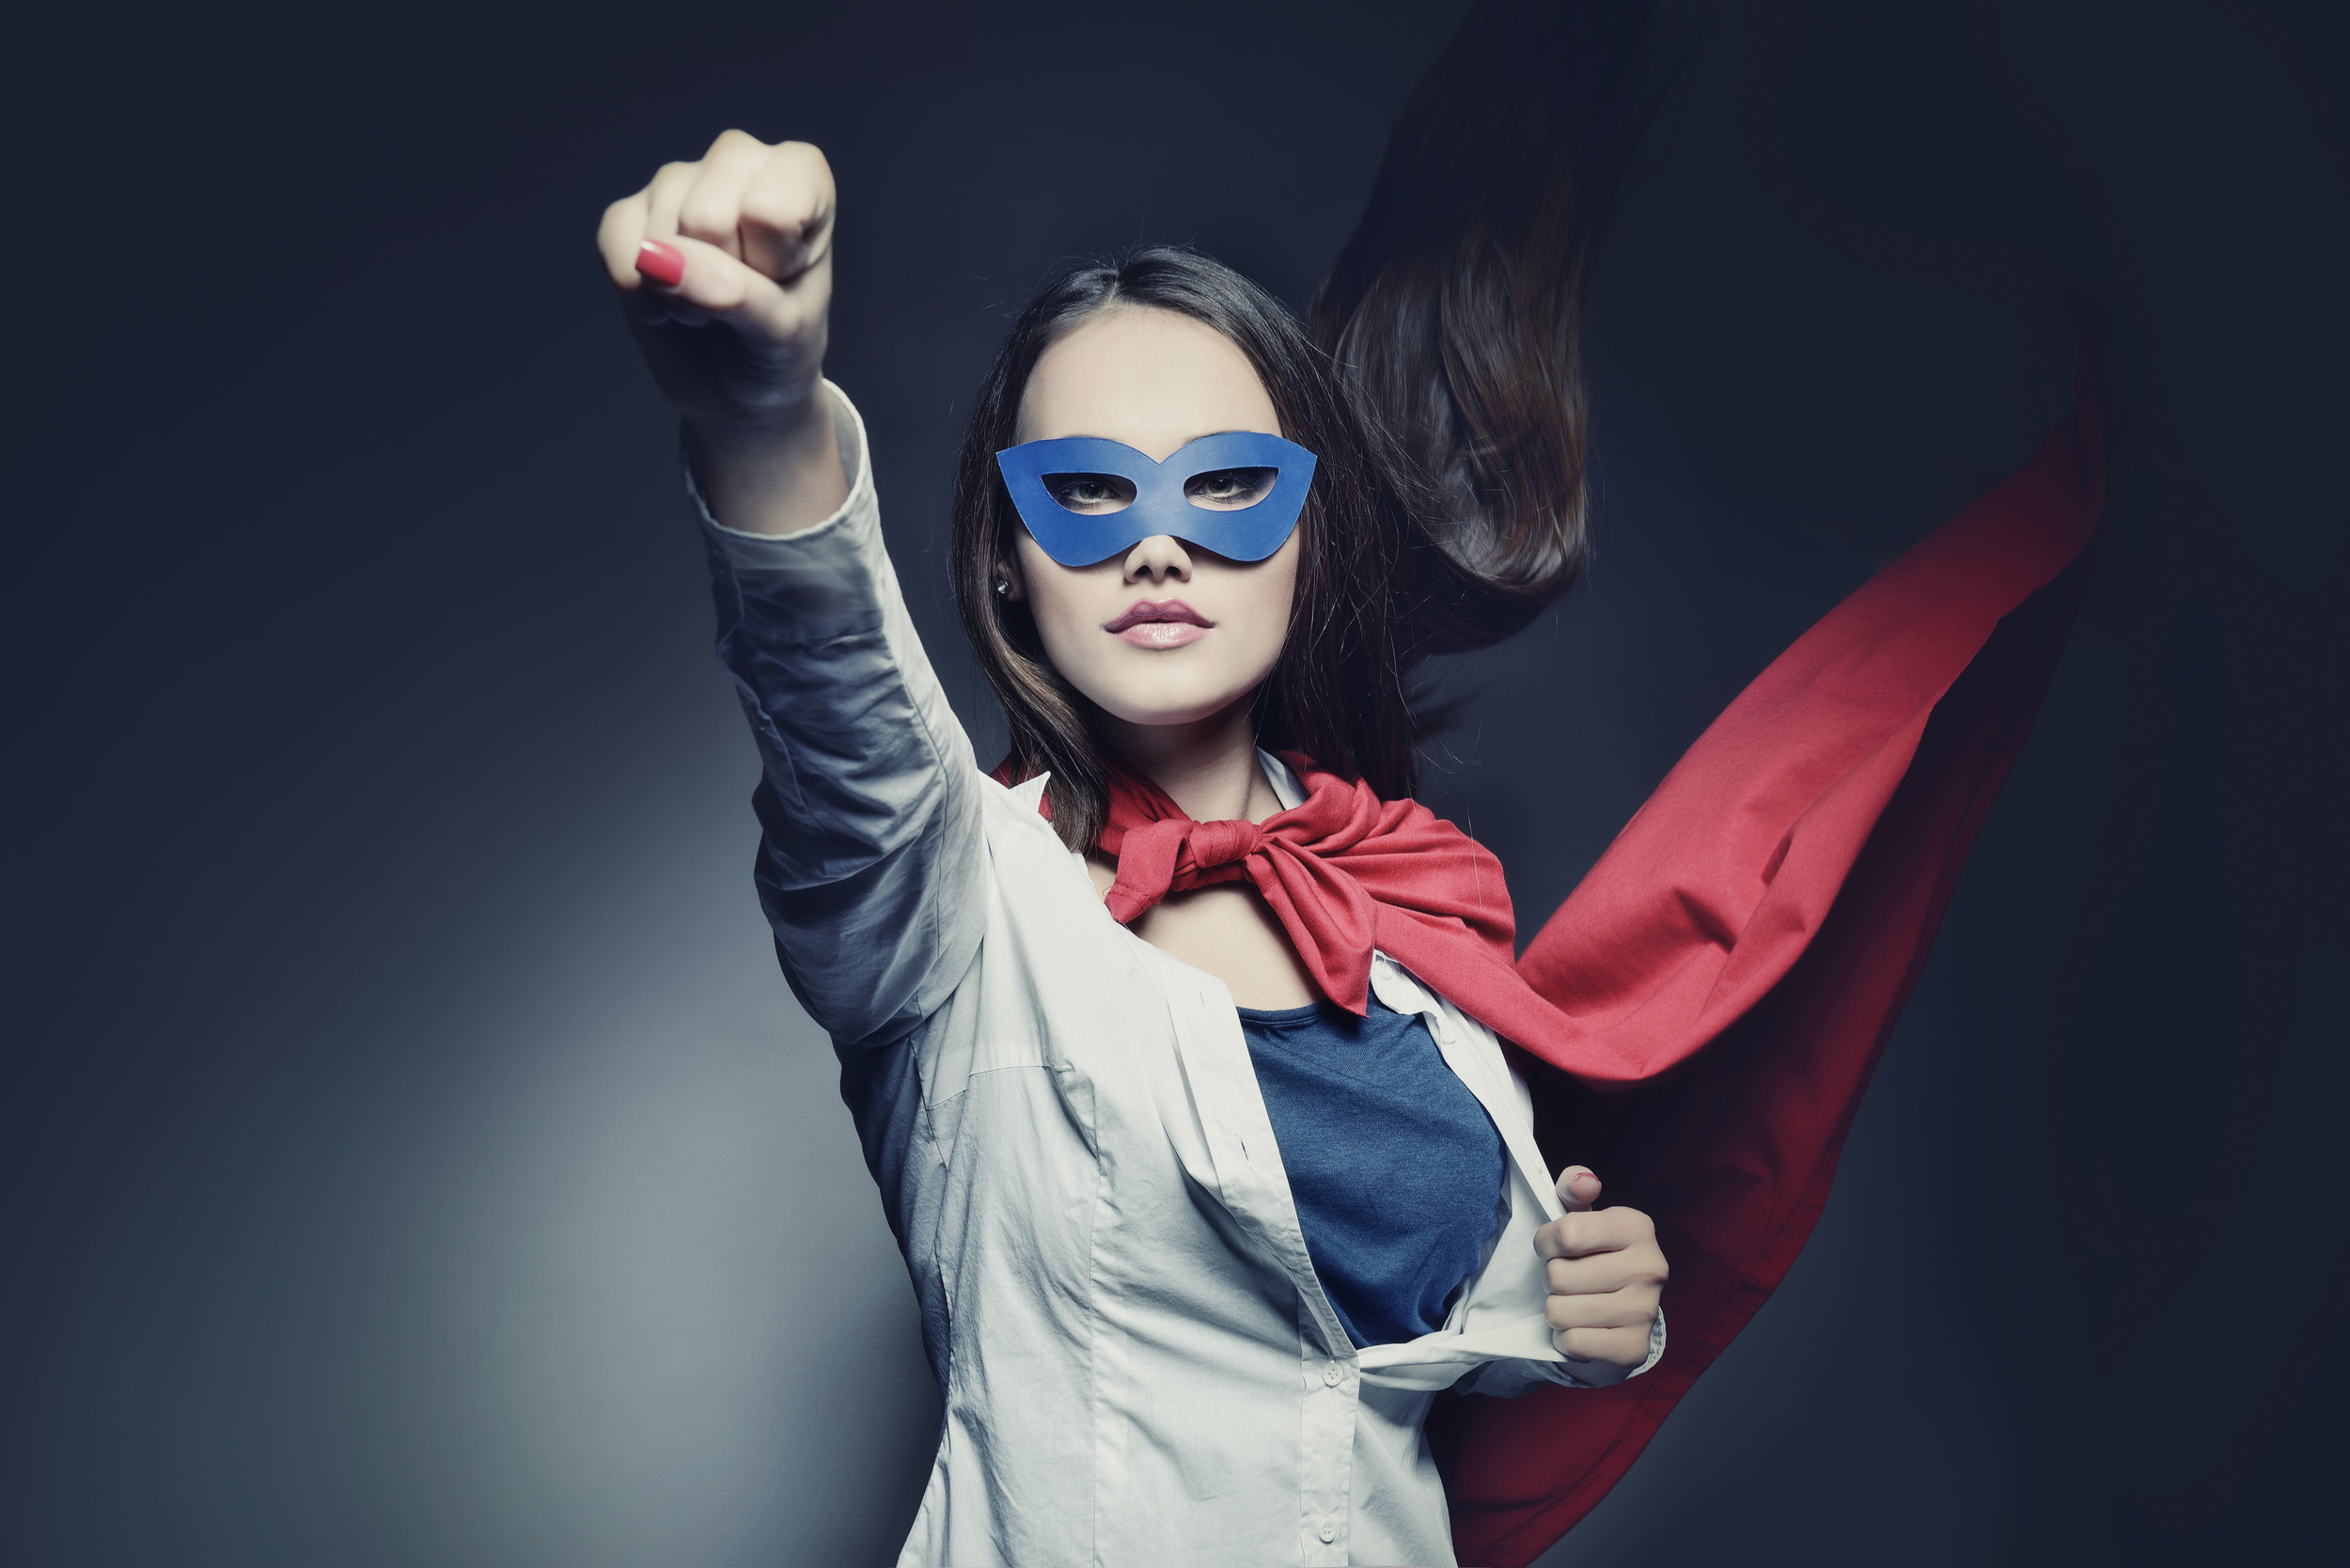 READ:9 Tips for Women to Convey Executive Leadership Presence -